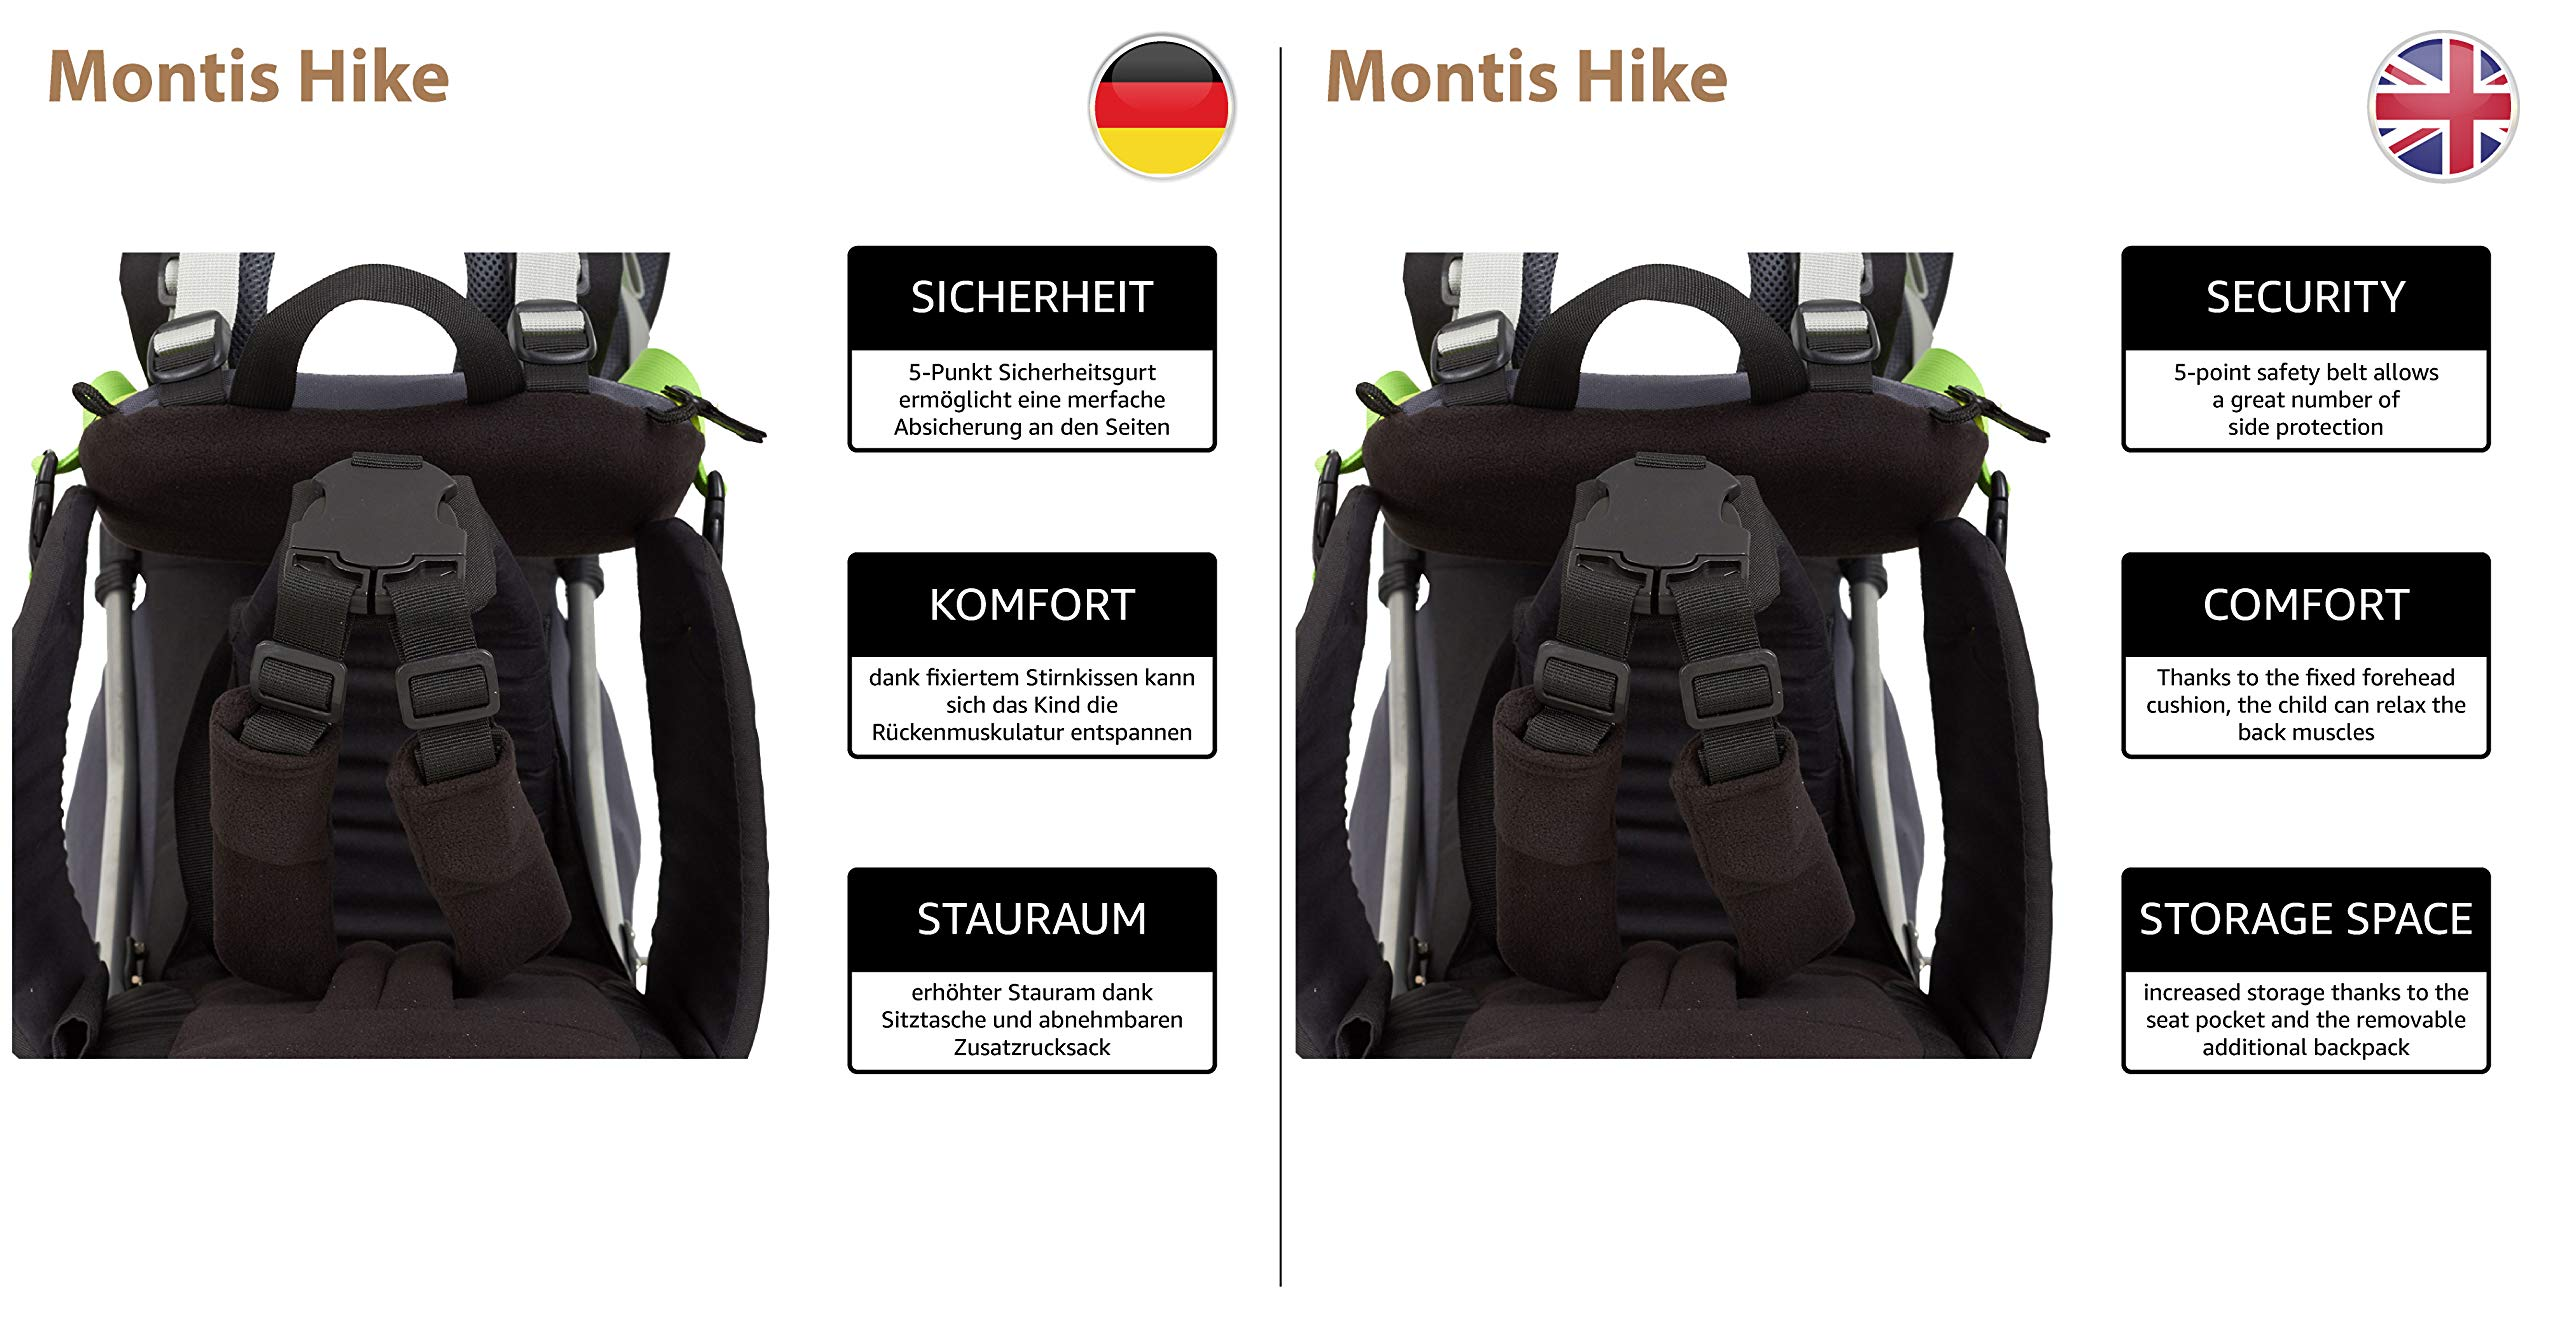 MONTIS HIKE, Premium Back Baby/Child Carrier, Up to 25kg, (black) M MONTIS OUTDOOR 89cm high, 37cm wide | up to 25kg | various colours | 28L seat bag Laminated and dirt-repellant outer material | approx. 2.2kg (without extras) Fully-adjustable, padded 5-point child's safety harness | plush lining, raised wind guard, can be filled from both sides | forehead cushion 9